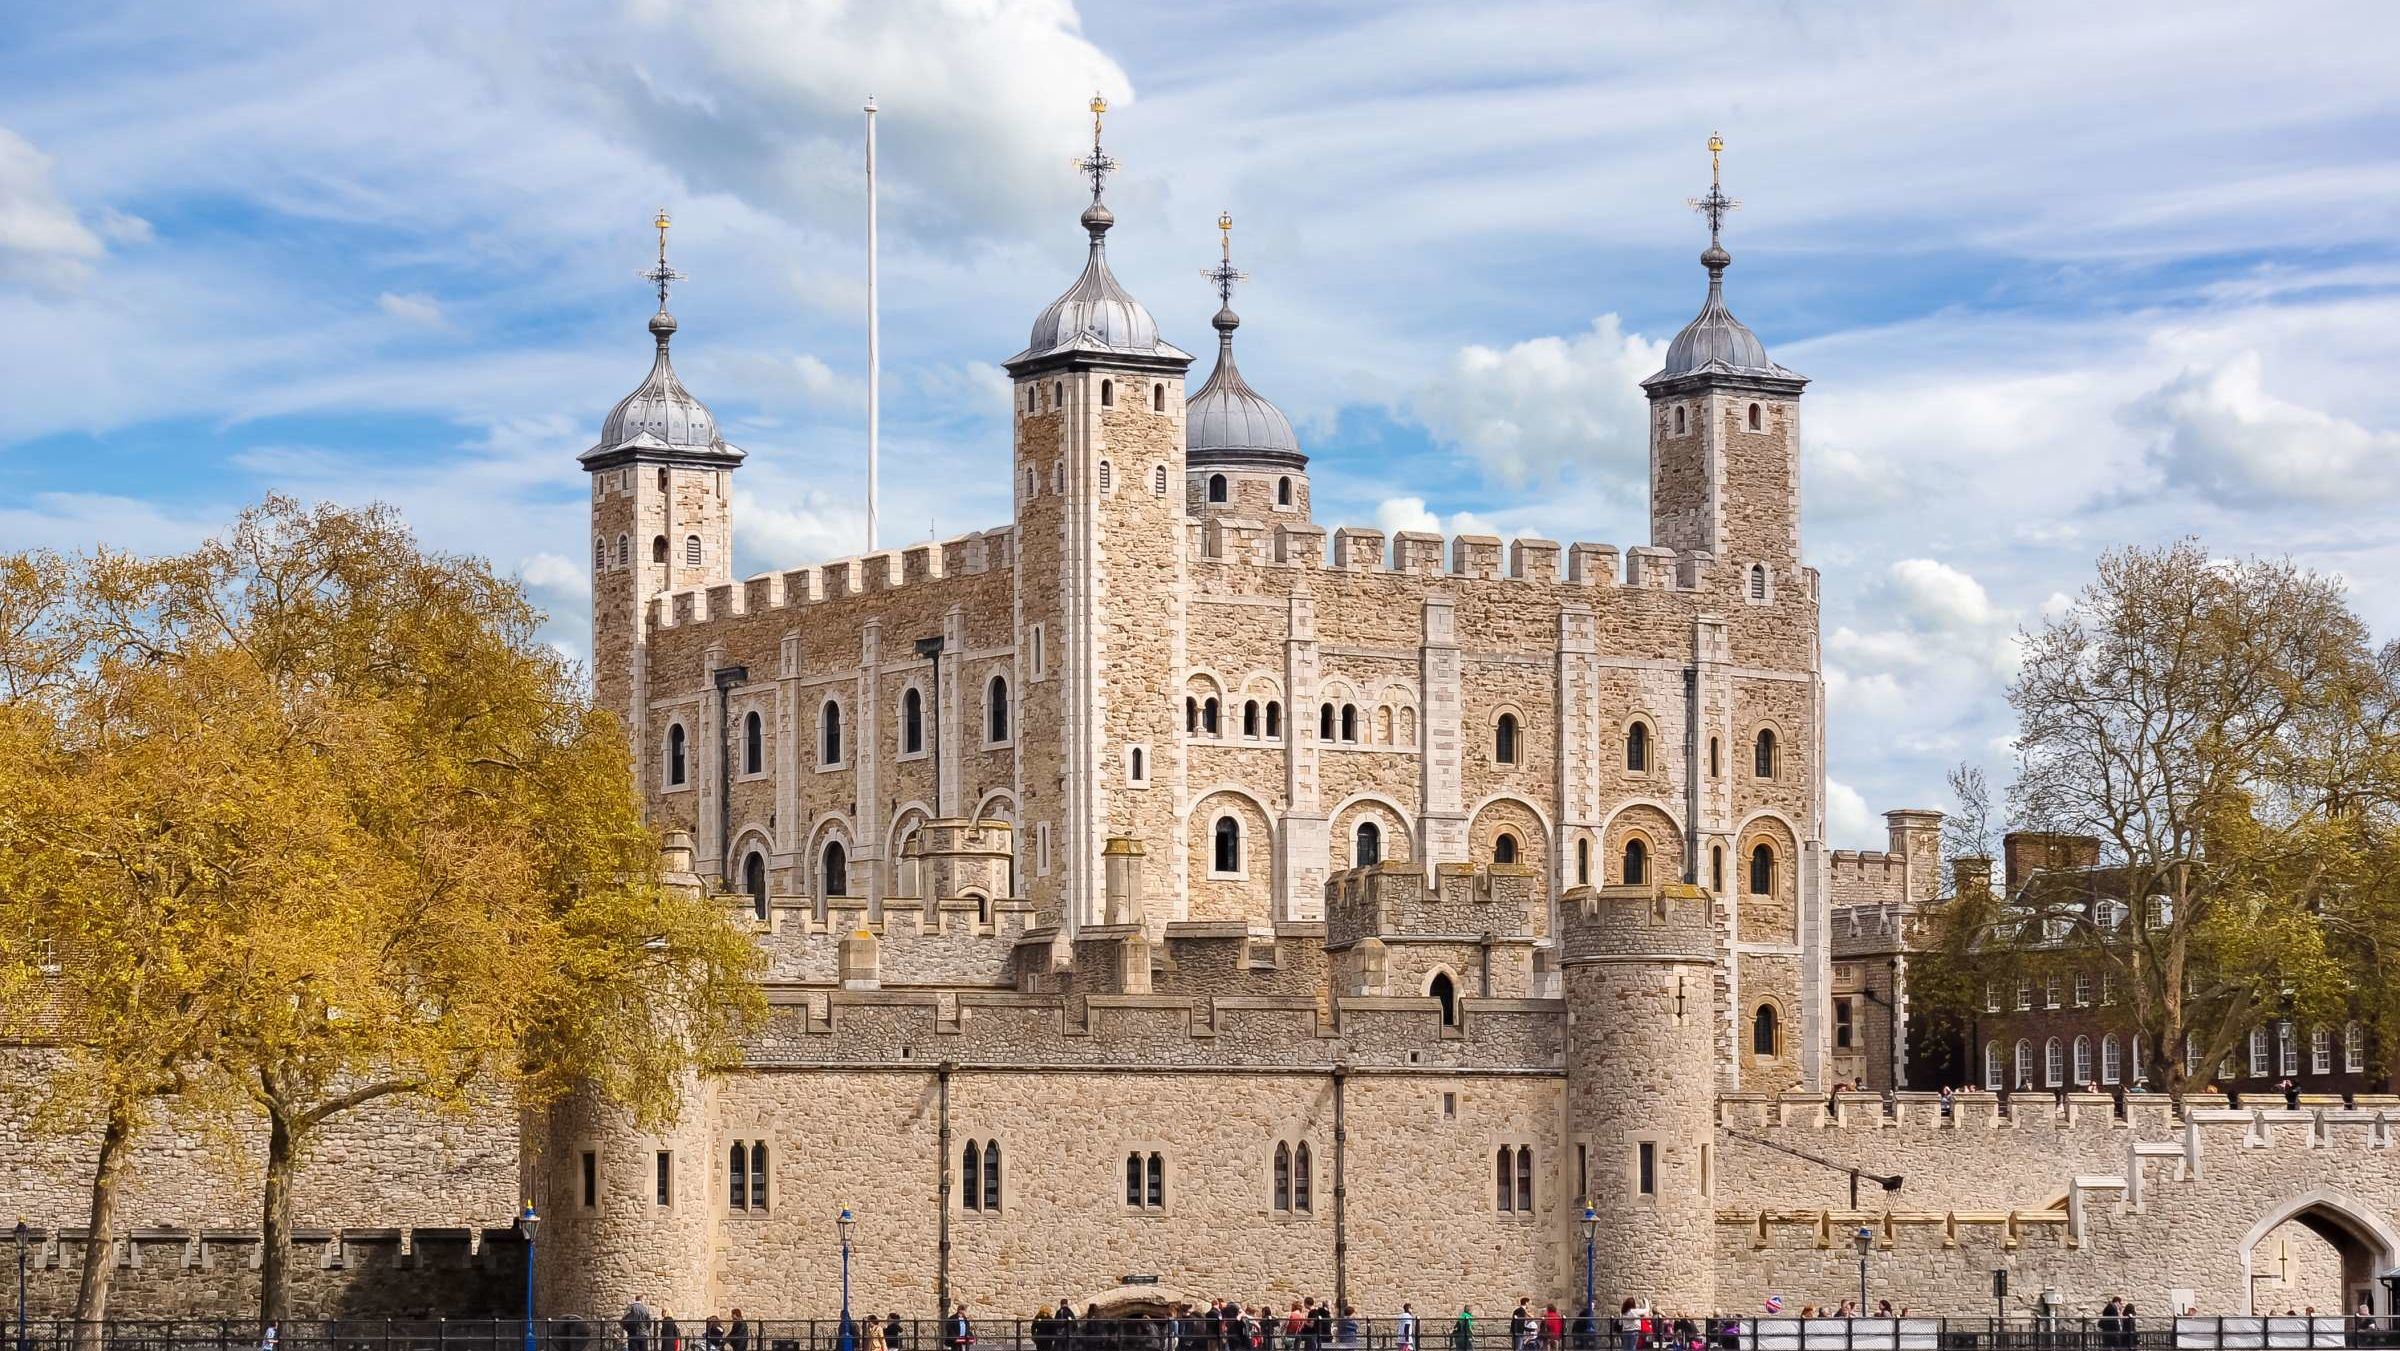 7 Formidable Facts About the Tower of London